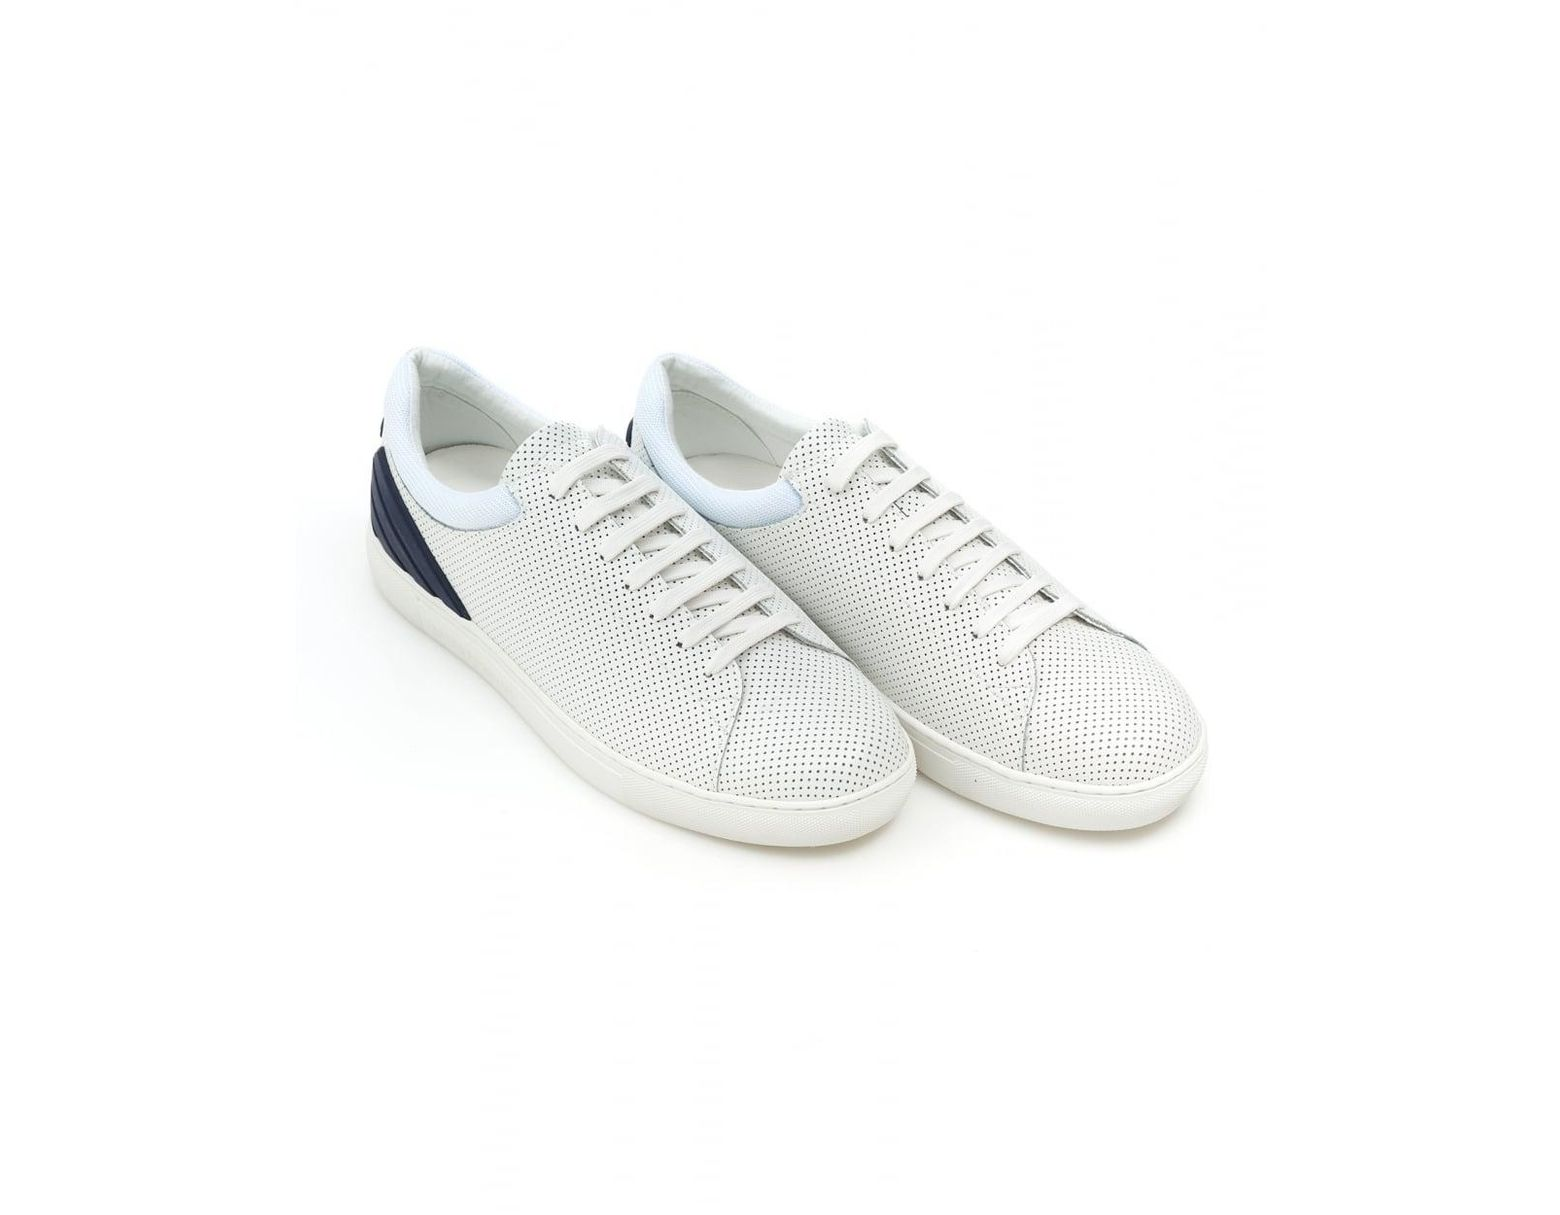 6a72b33e70 Men's Perforated Sneakers, Lace Up White Leather Sneakers